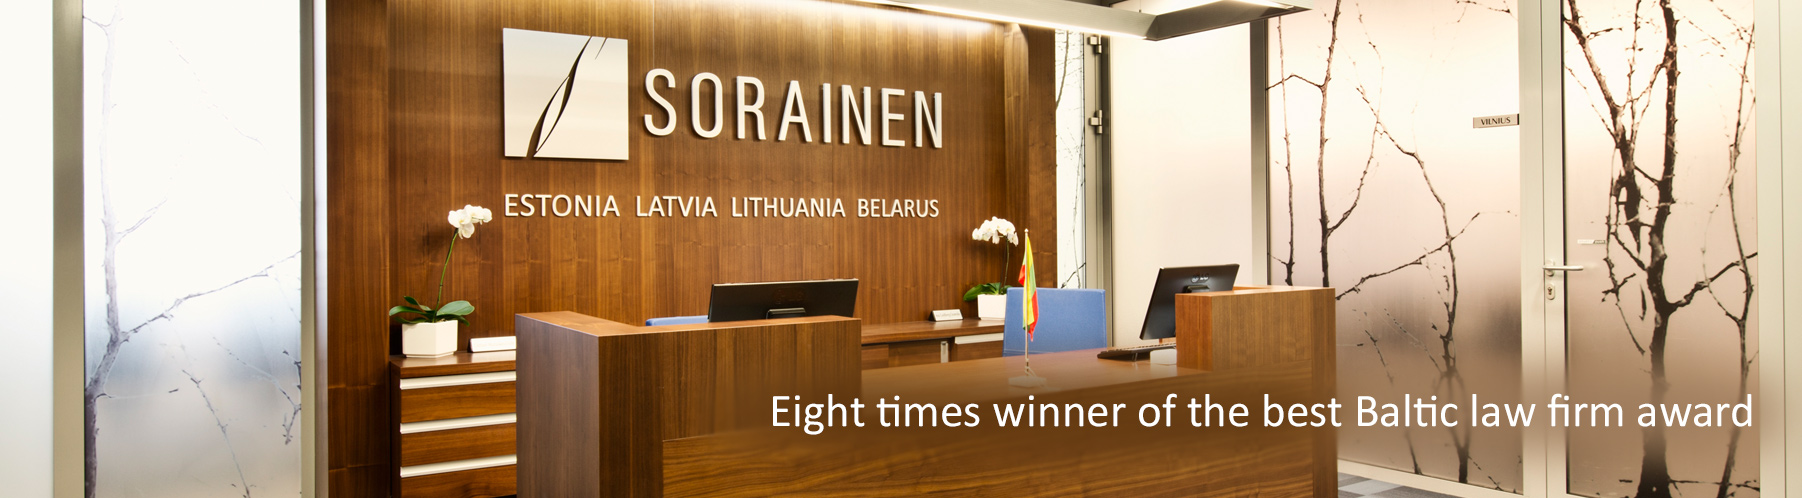 Eight times winner of the best Baltic law firm award